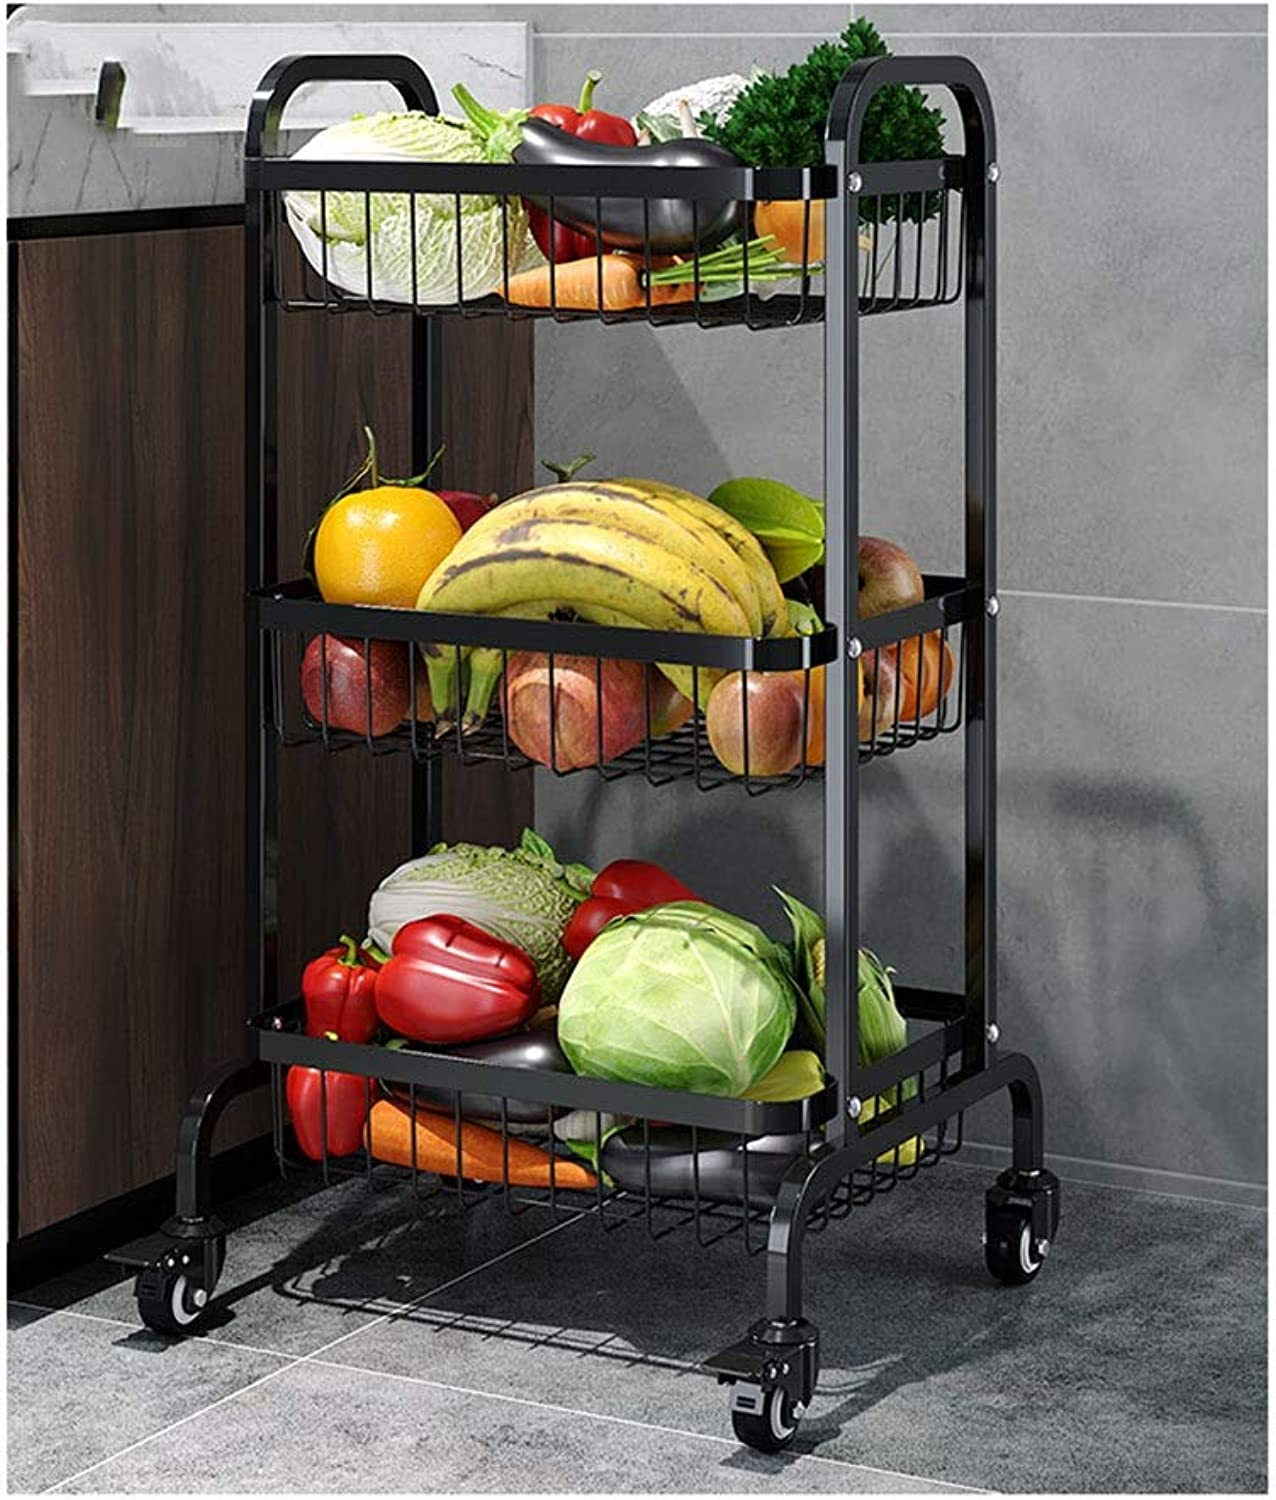 Kitchen Storage Rack Three Layers Metal Basket Storage Shelf with Pulley Fruit and Vegetable Shelf-Black Silver Organisation (color   A)